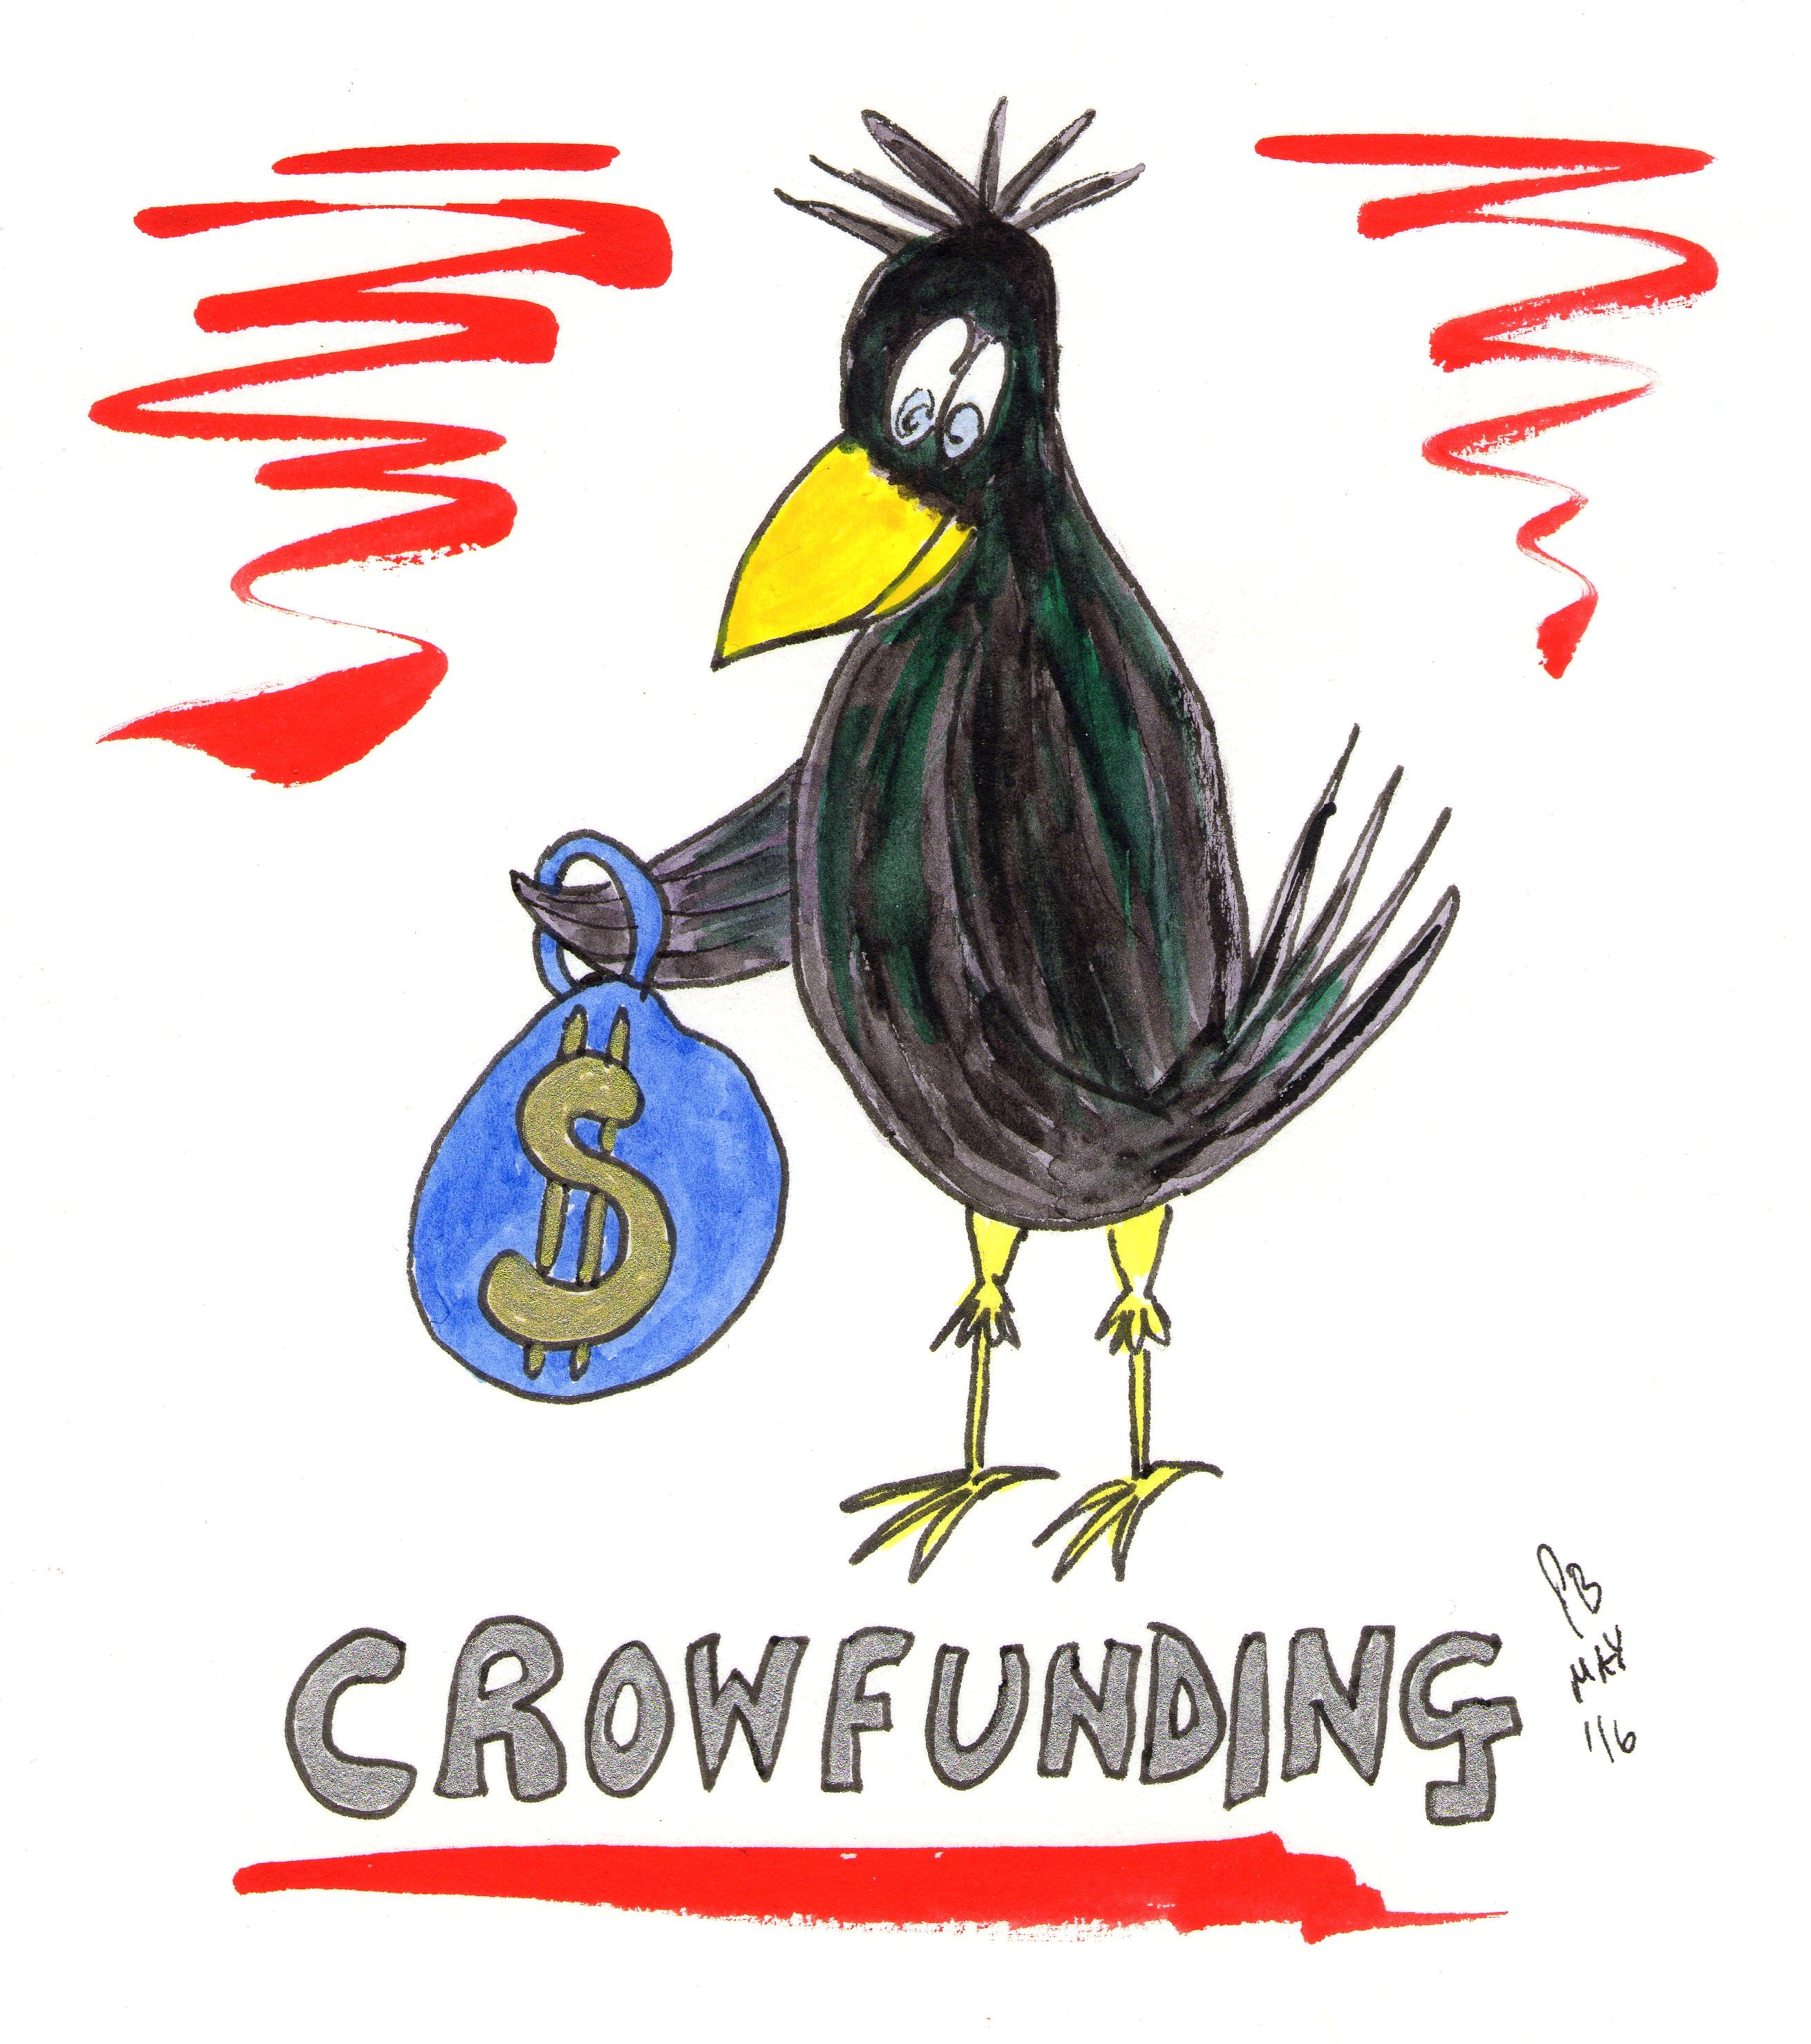 Is Crowd Funding or Crow Funding in Dollars or Pounds